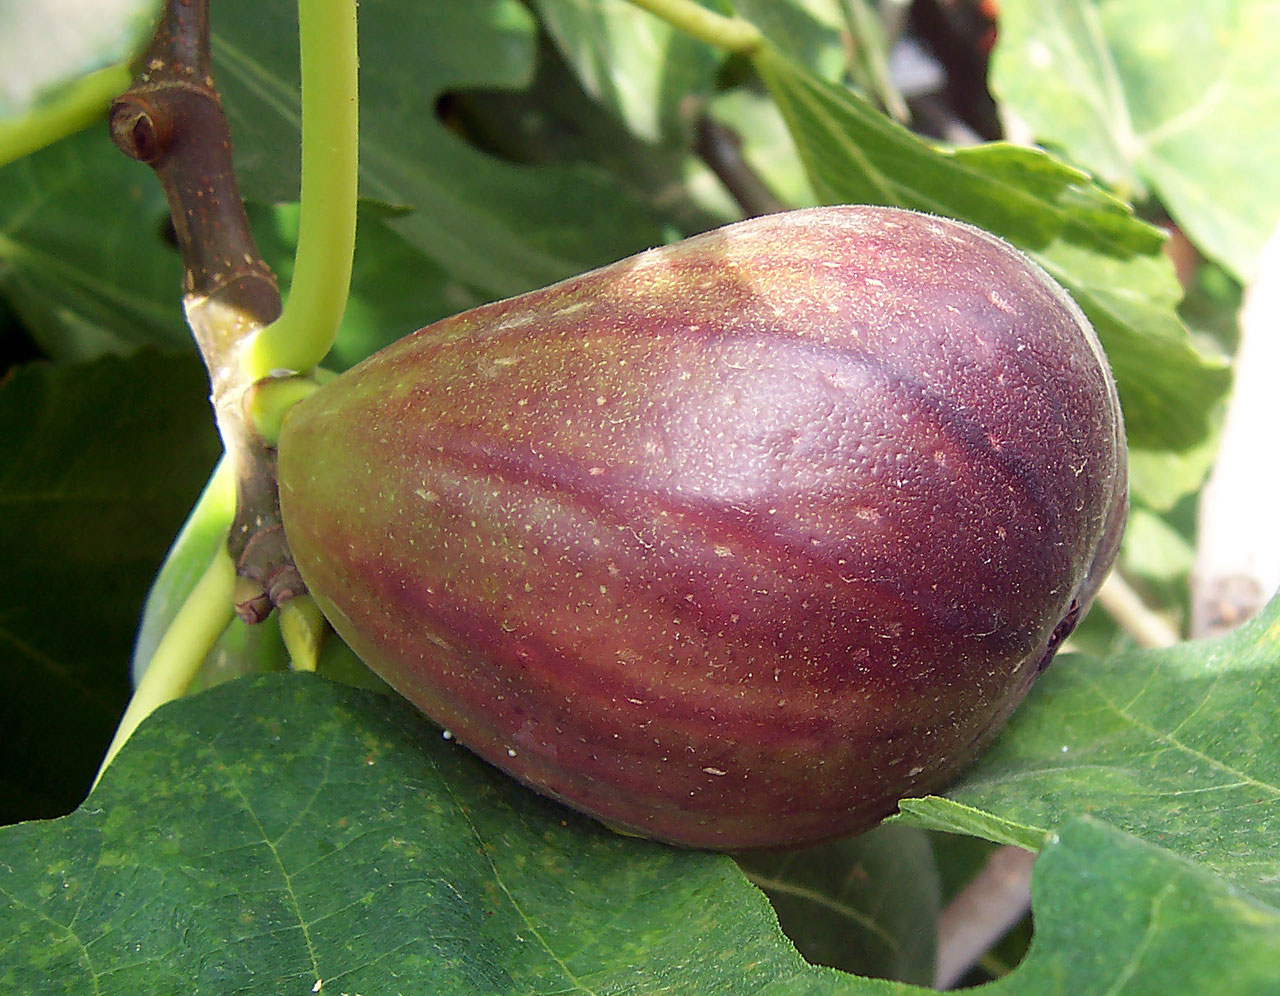 Do fig trees grow fruit before leaves